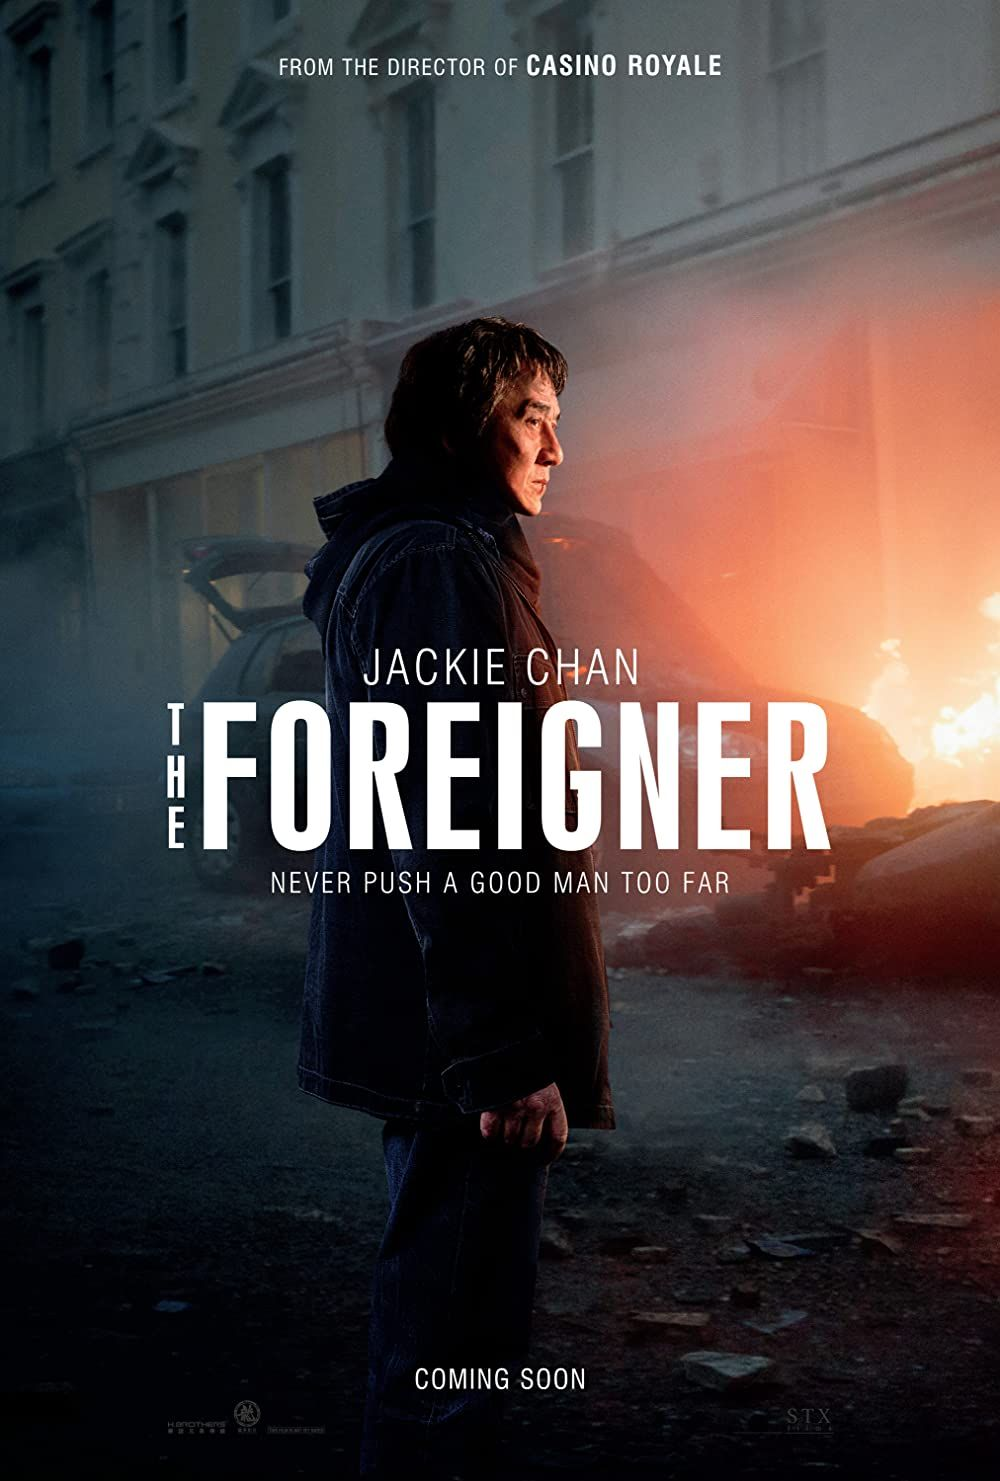 The Foreigner 2017 In 2021 Jackie Chan Movies 2017 Movies